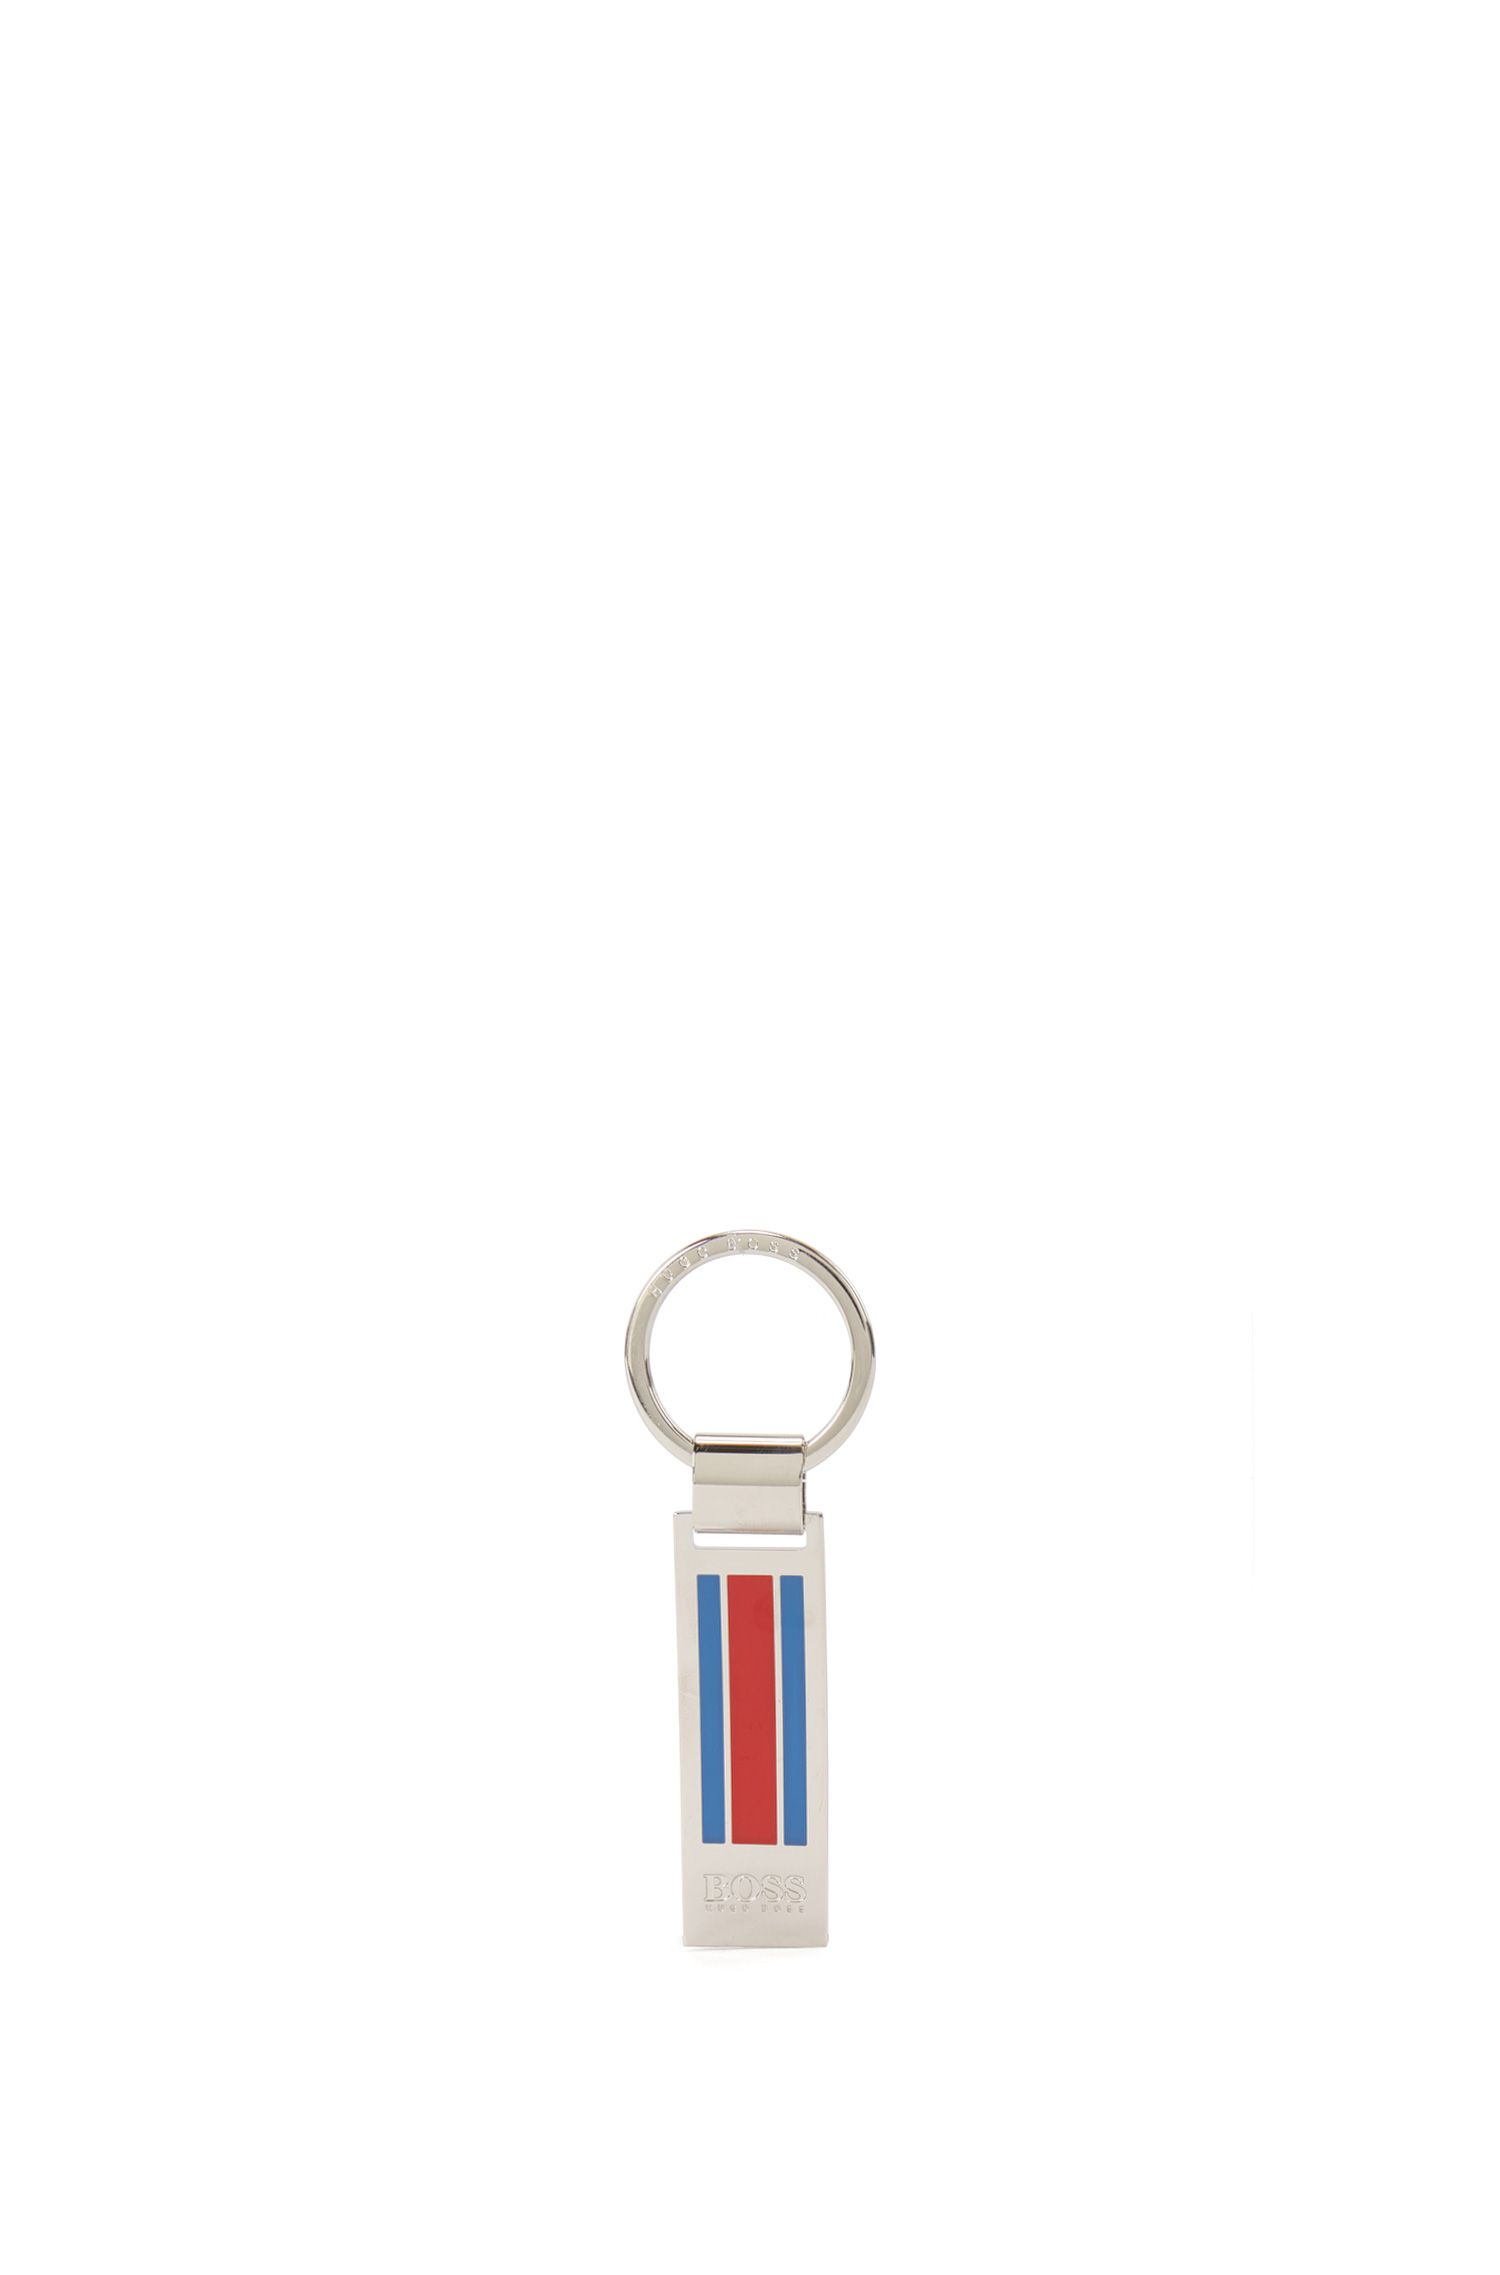 Polished metal keyring with enamel stripes